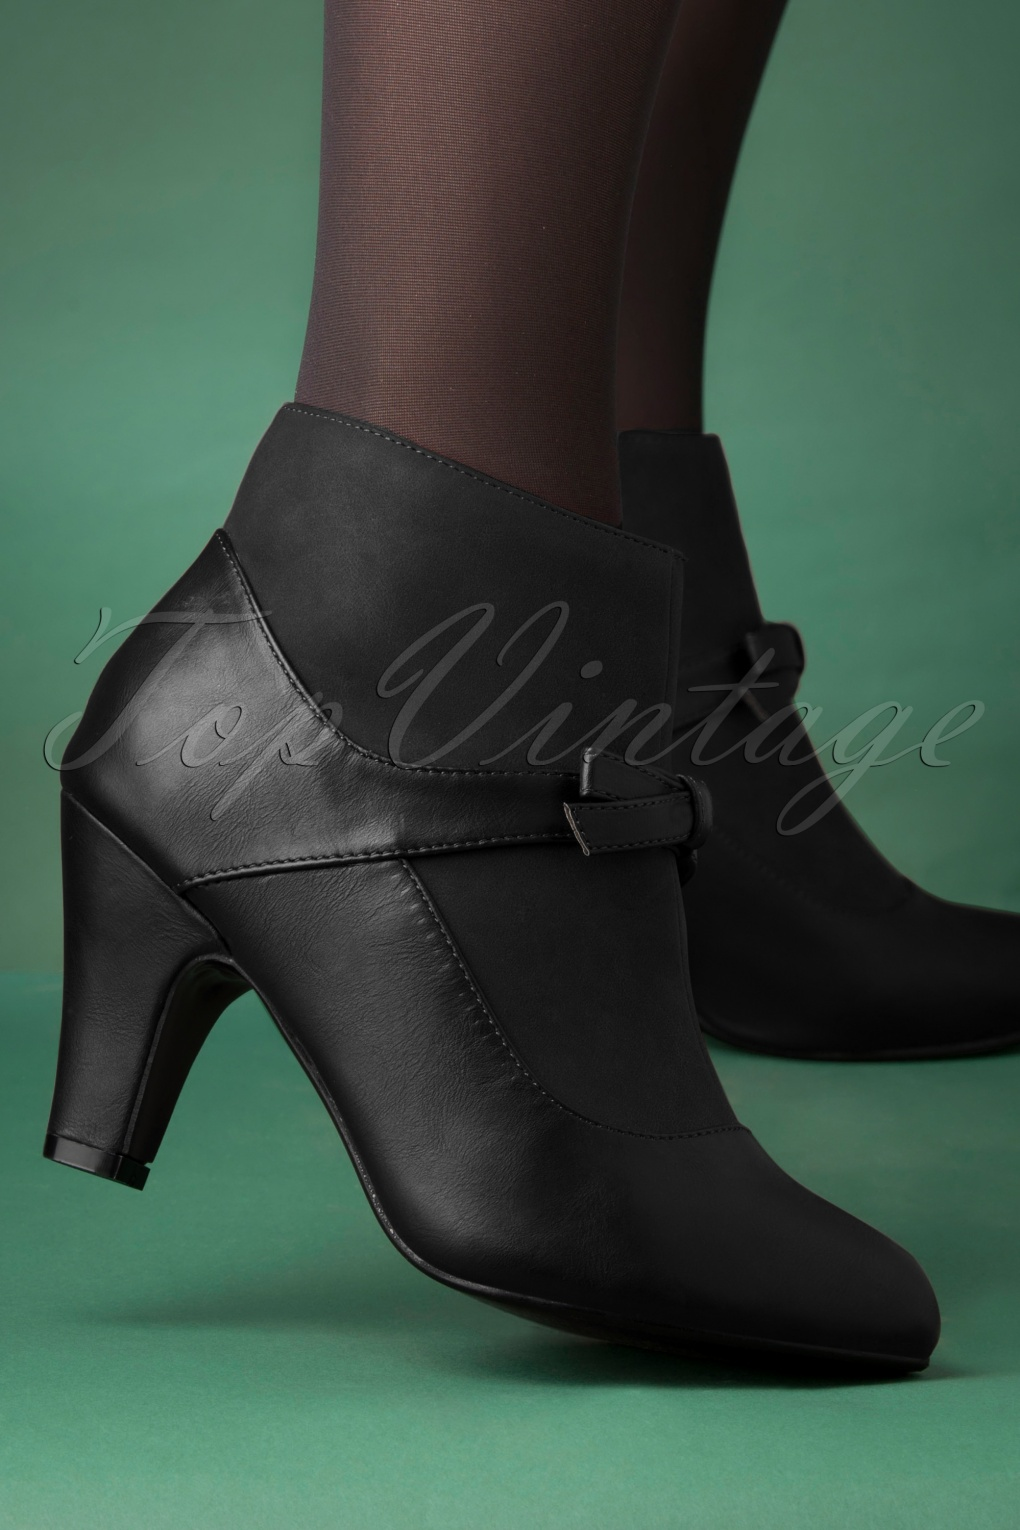 1950s Style Shoes | Heels, Flats, Saddle Shoes 50s Vintage Wings Shoe Booties in Black £66.54 AT vintagedancer.com